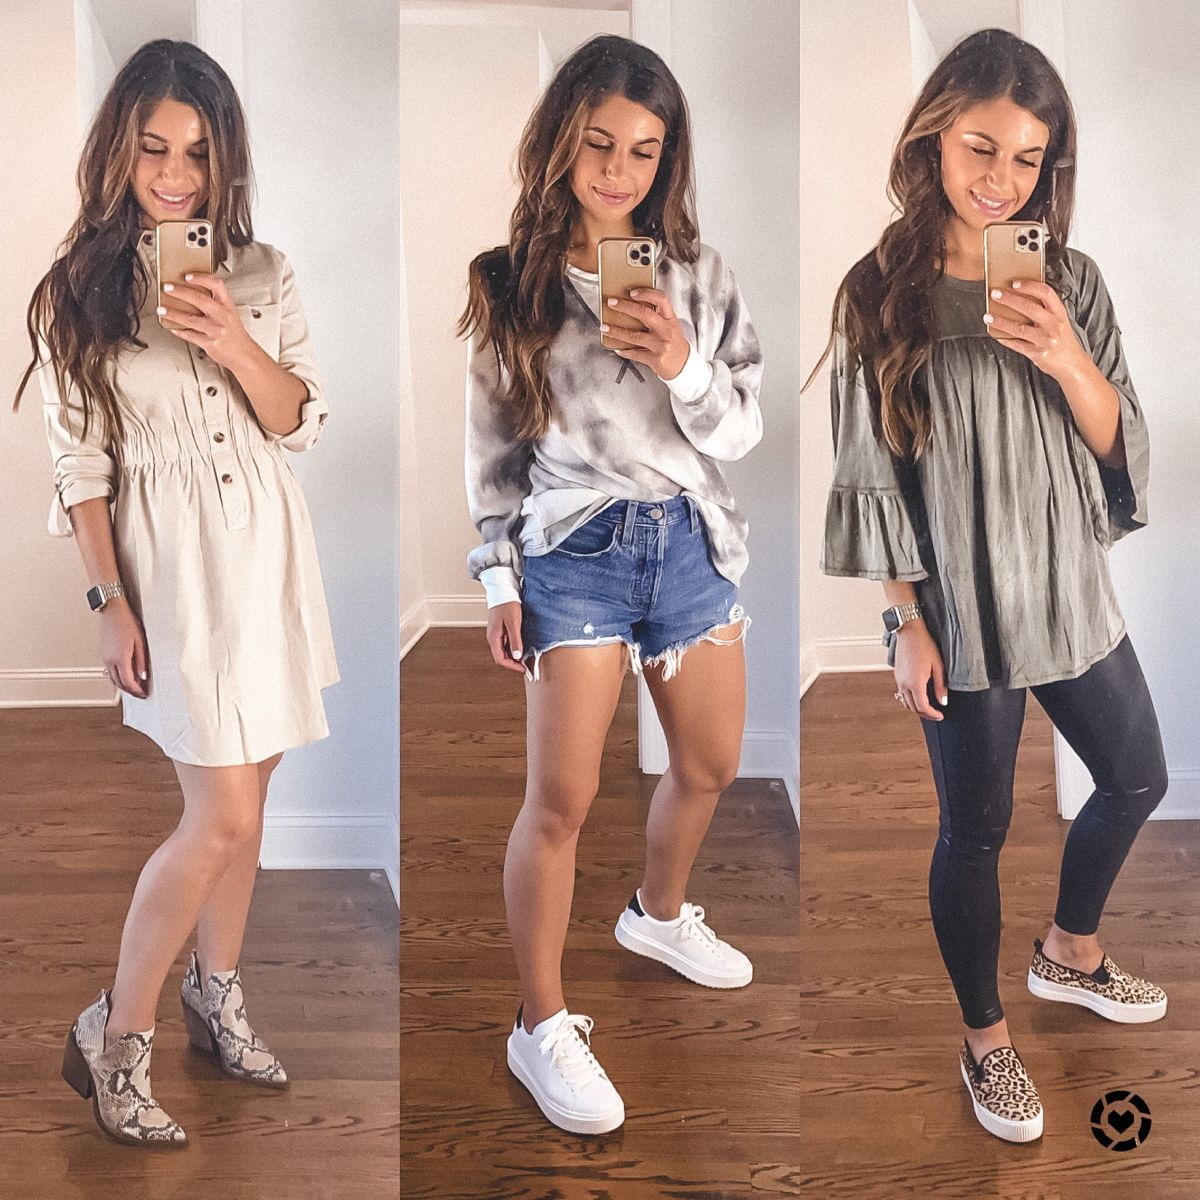 #ootd #fashionblogger #outfits #lookbook #lookoftheday